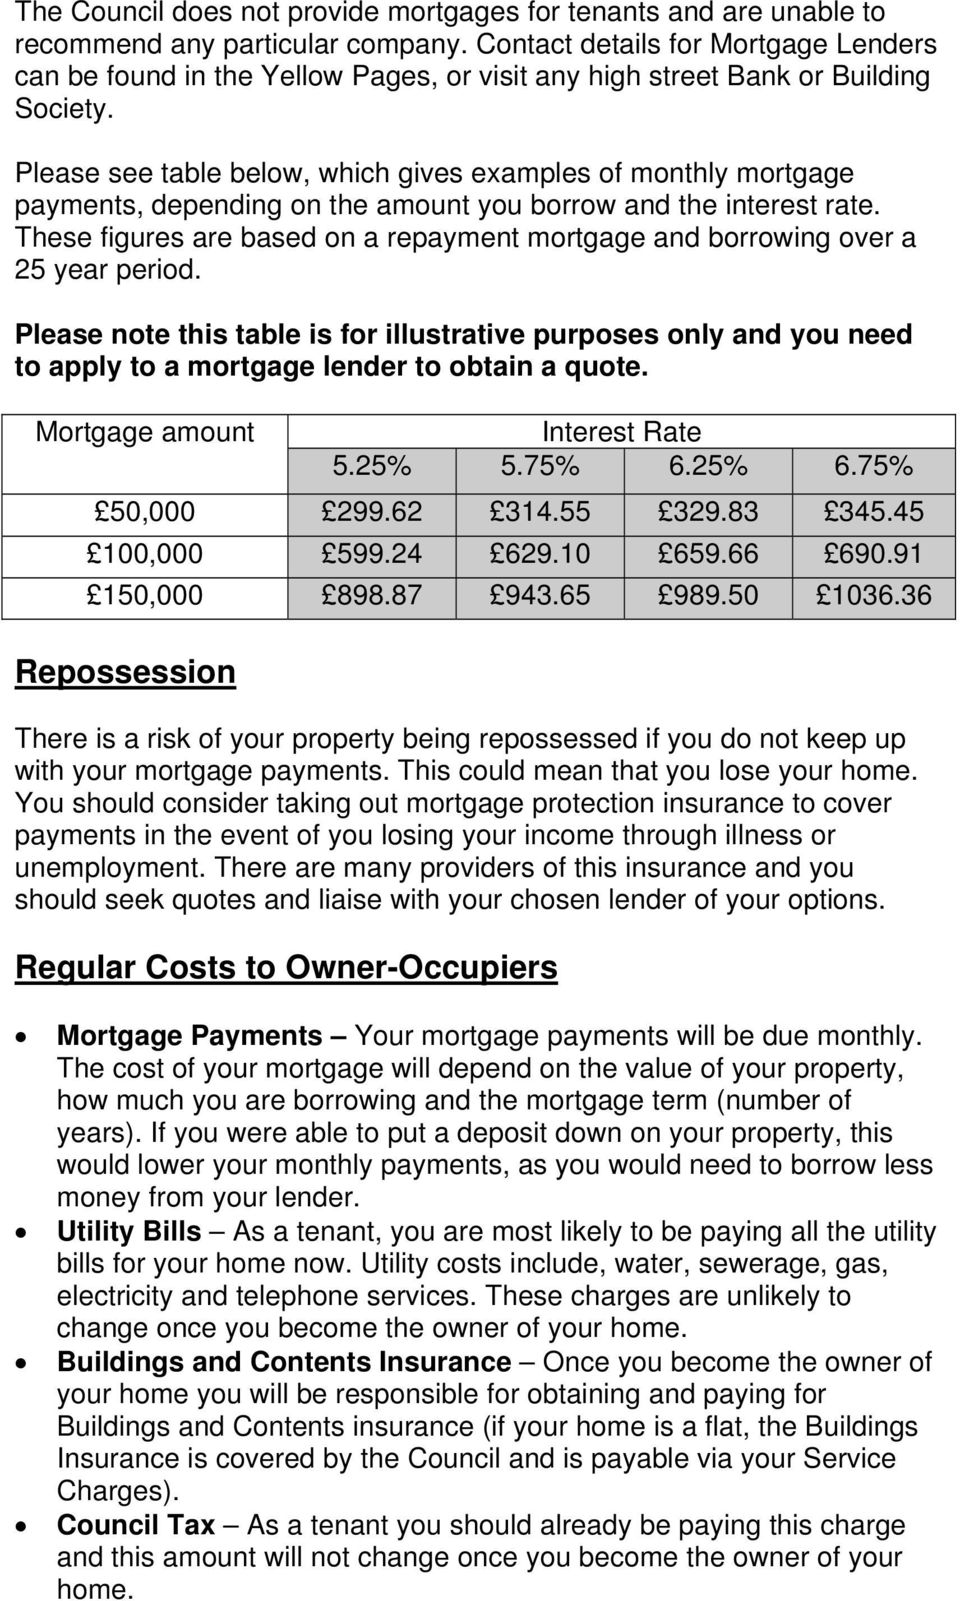 Please see table below, which gives examples of monthly mortgage payments, depending on the amount you borrow and the interest rate.